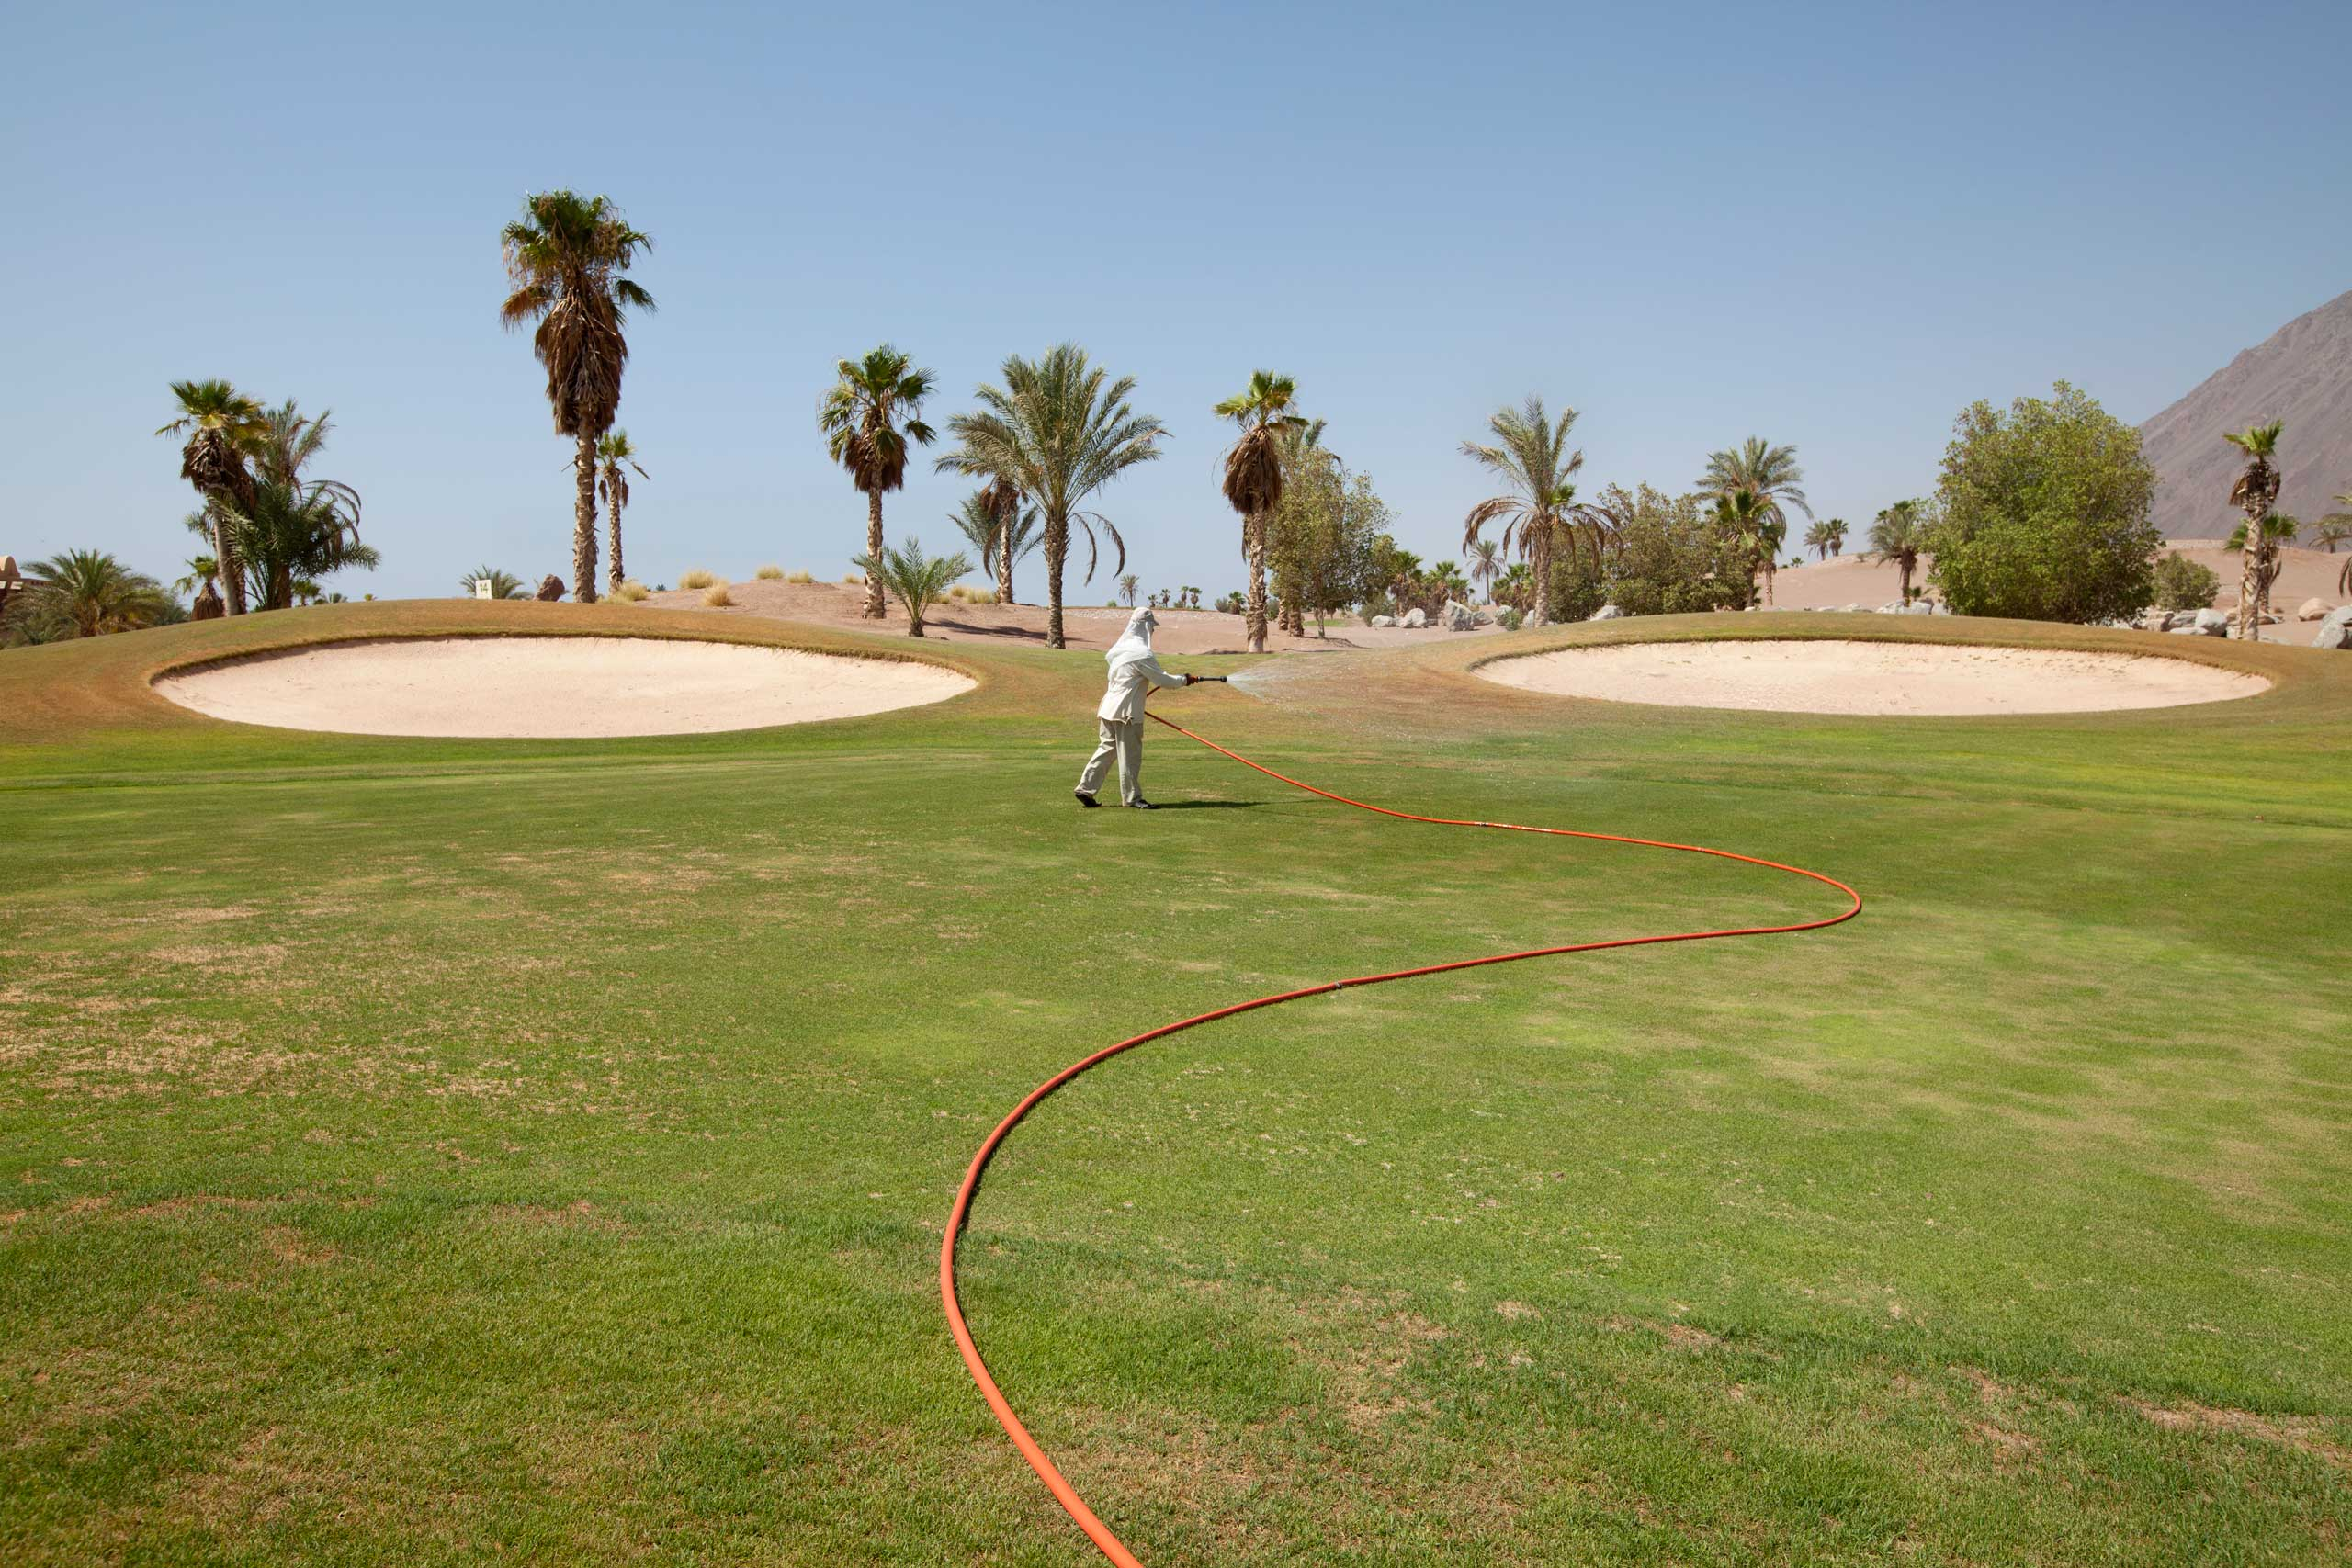 A golf course in Taba Heights, Sinai, July 2014.